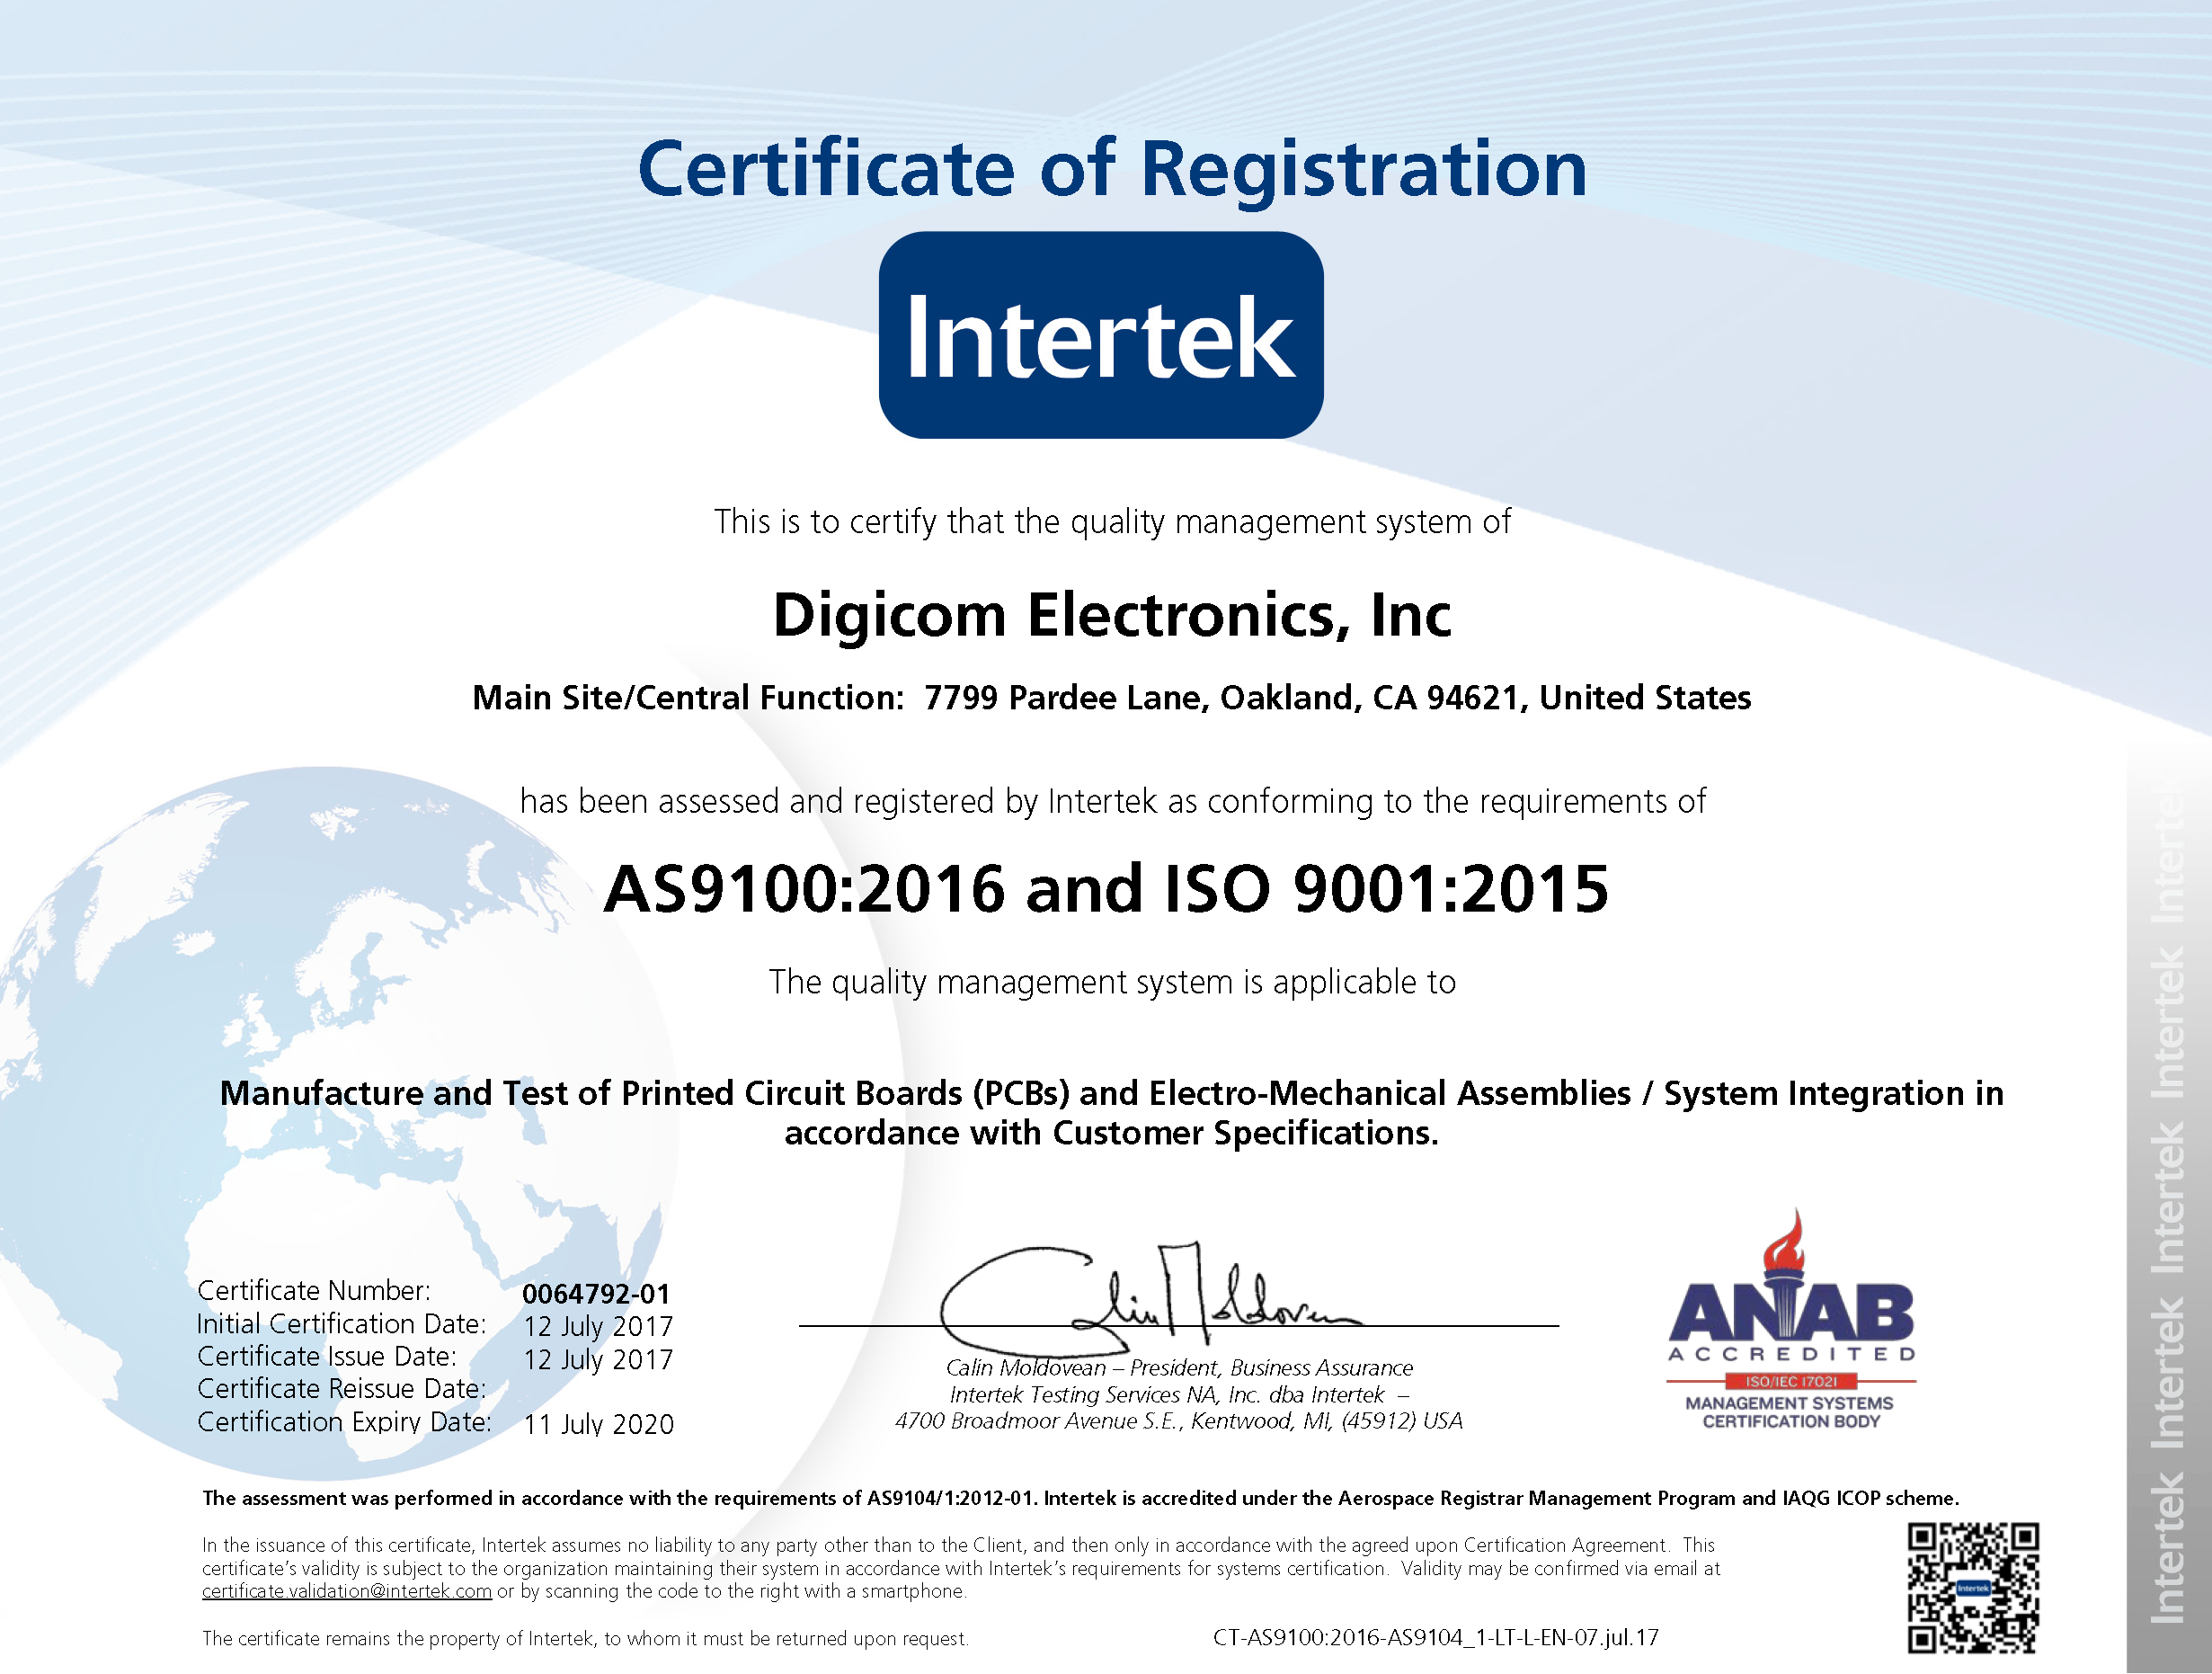 AS9100:2016 (RevD) Aerospace and ISO9001:2015 Certifcations